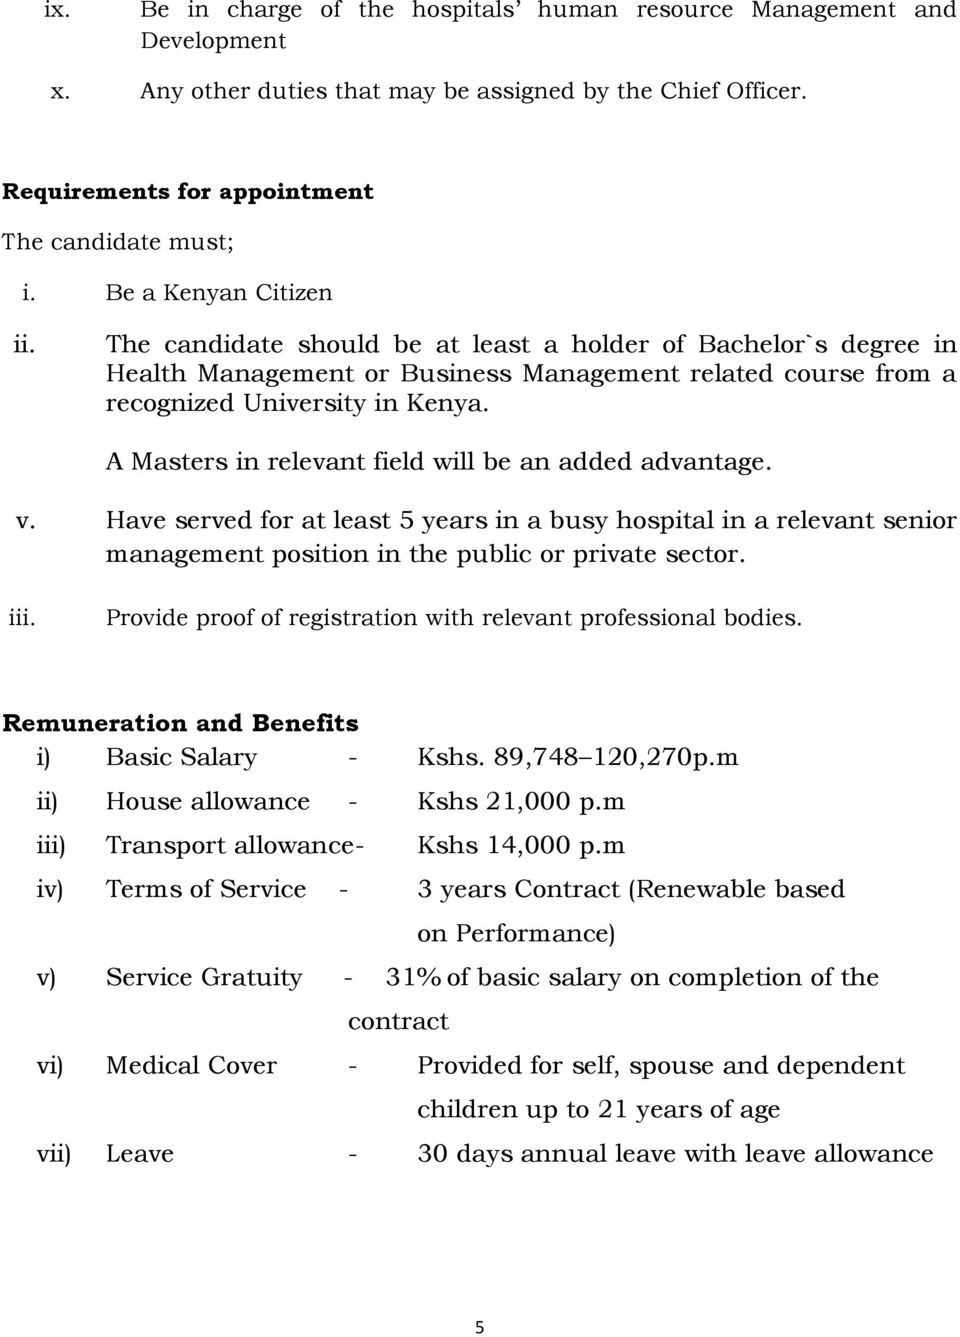 A Masters in relevant field will be an added advantage. v. Have served for at least 5 years in a busy hospital in a relevant senior management position in the public or private sector.